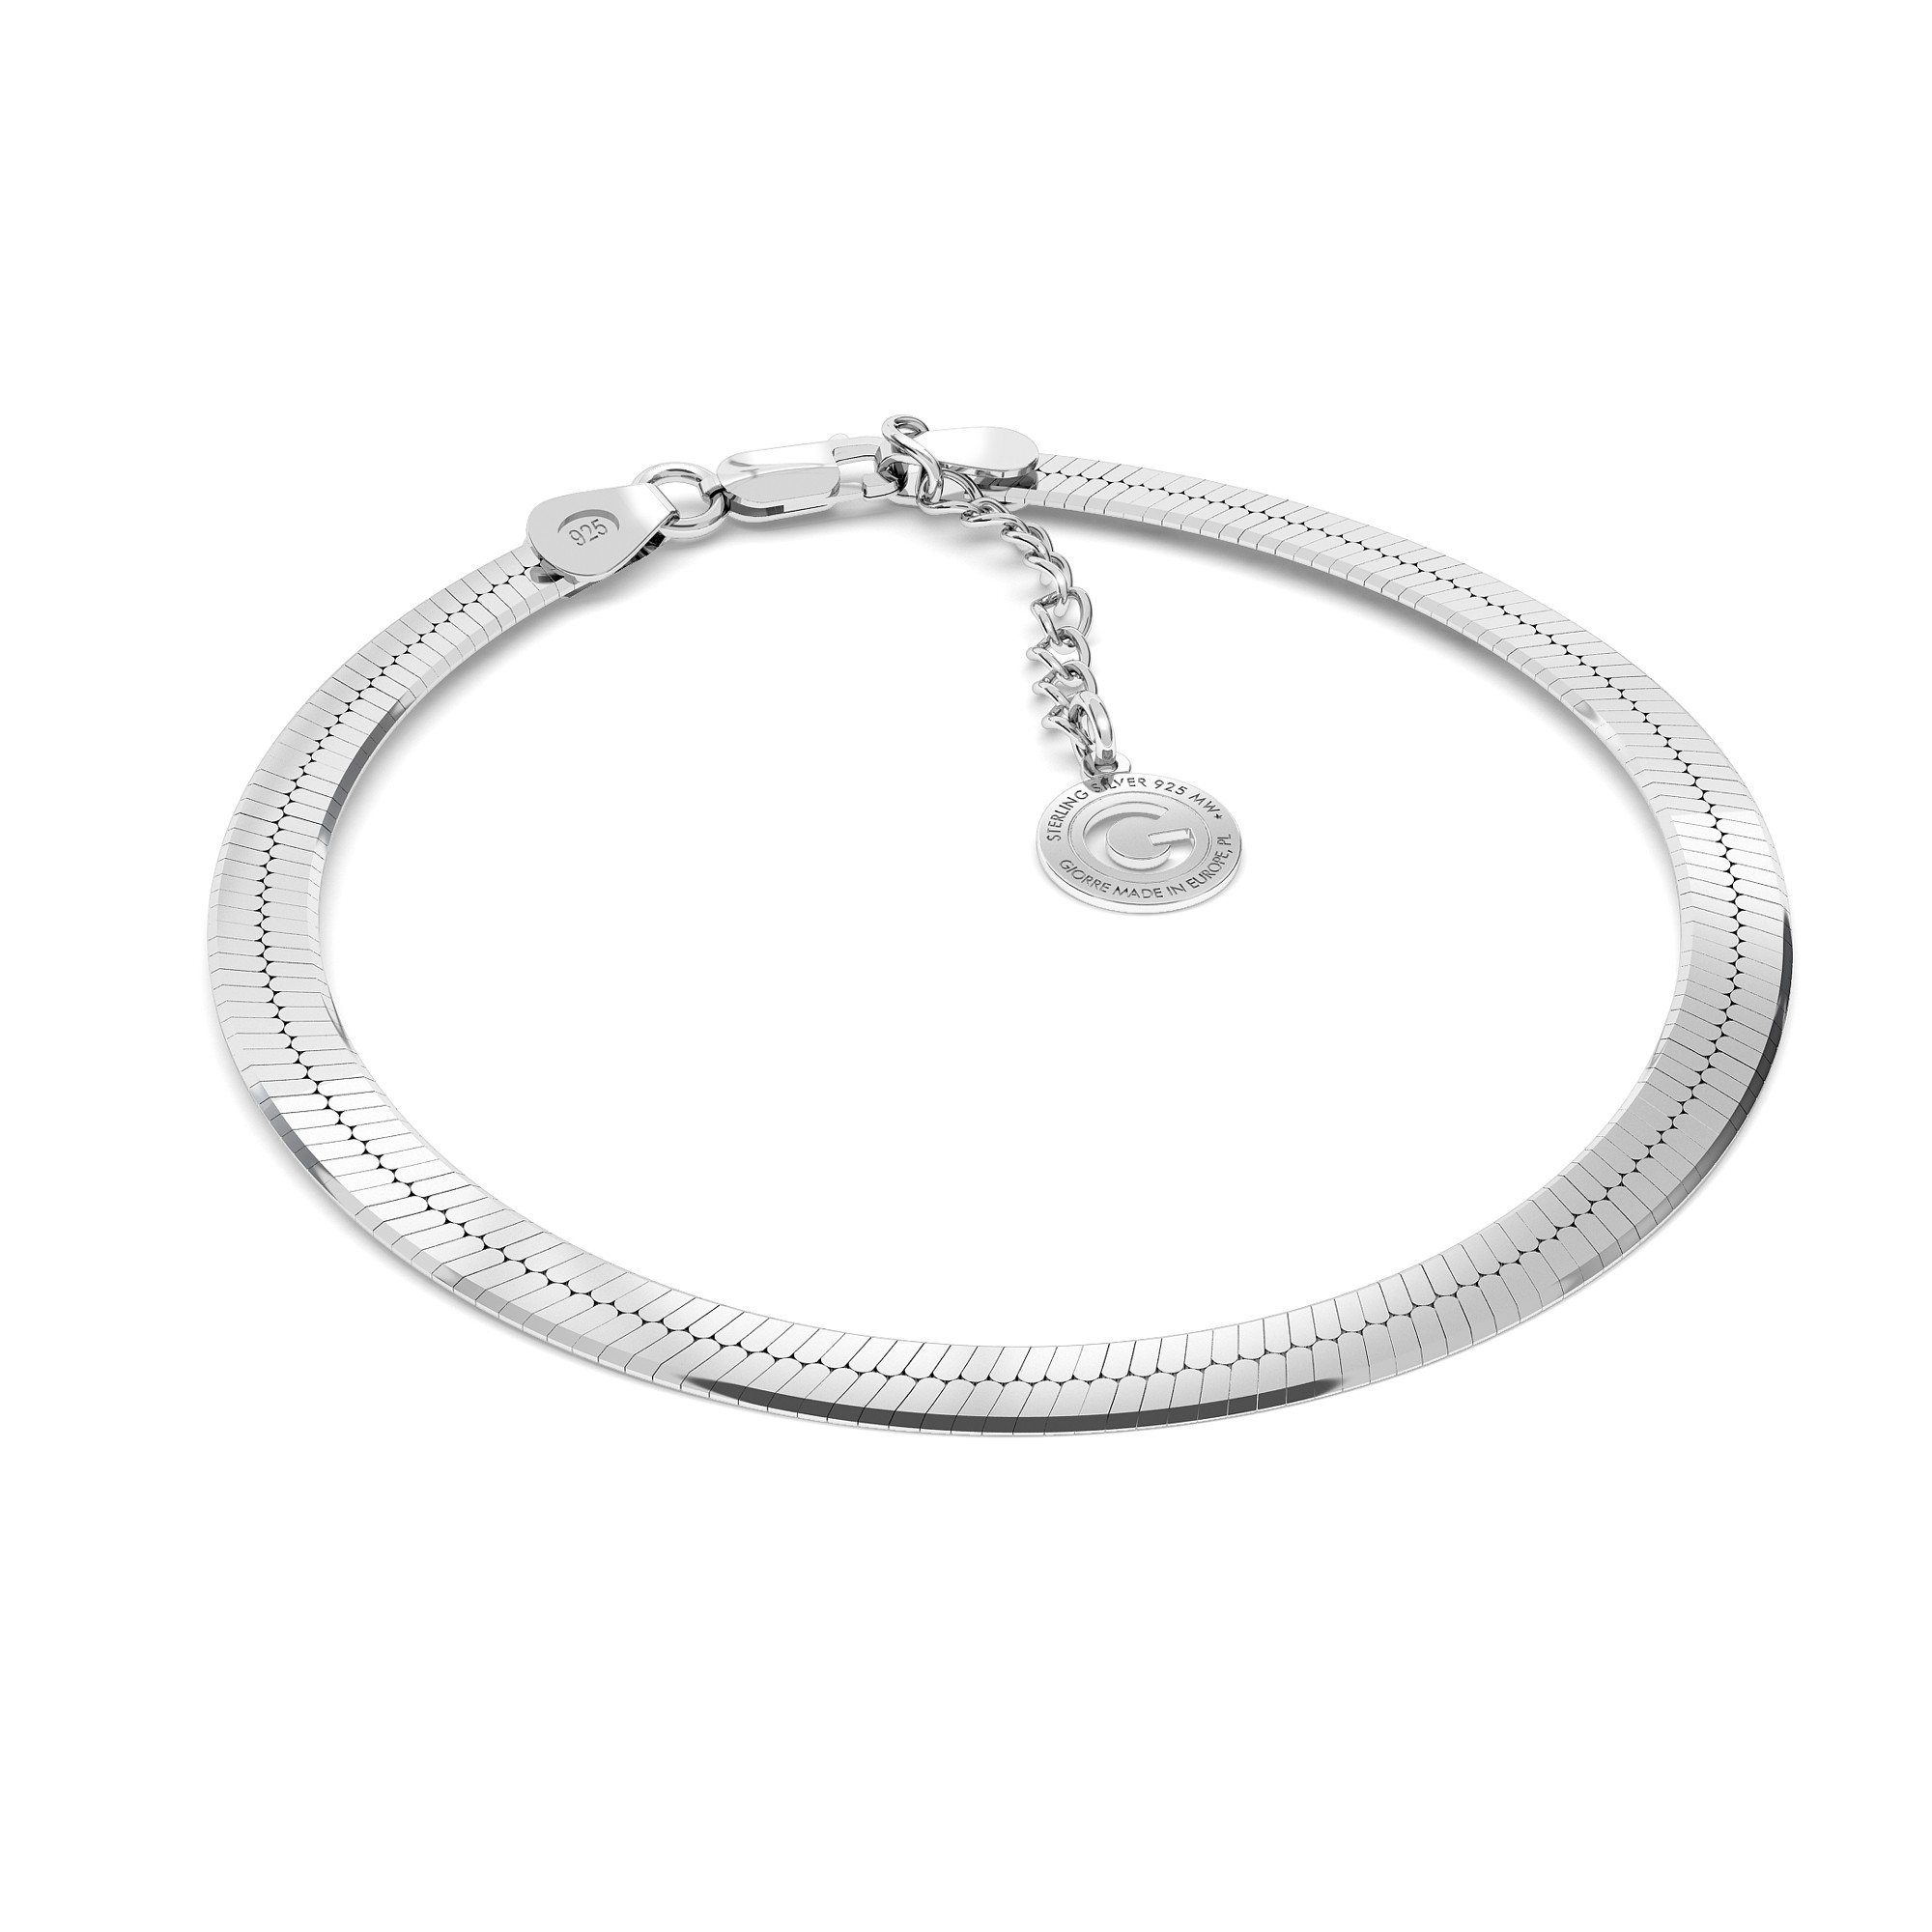 Flaches armband sterling silber 925